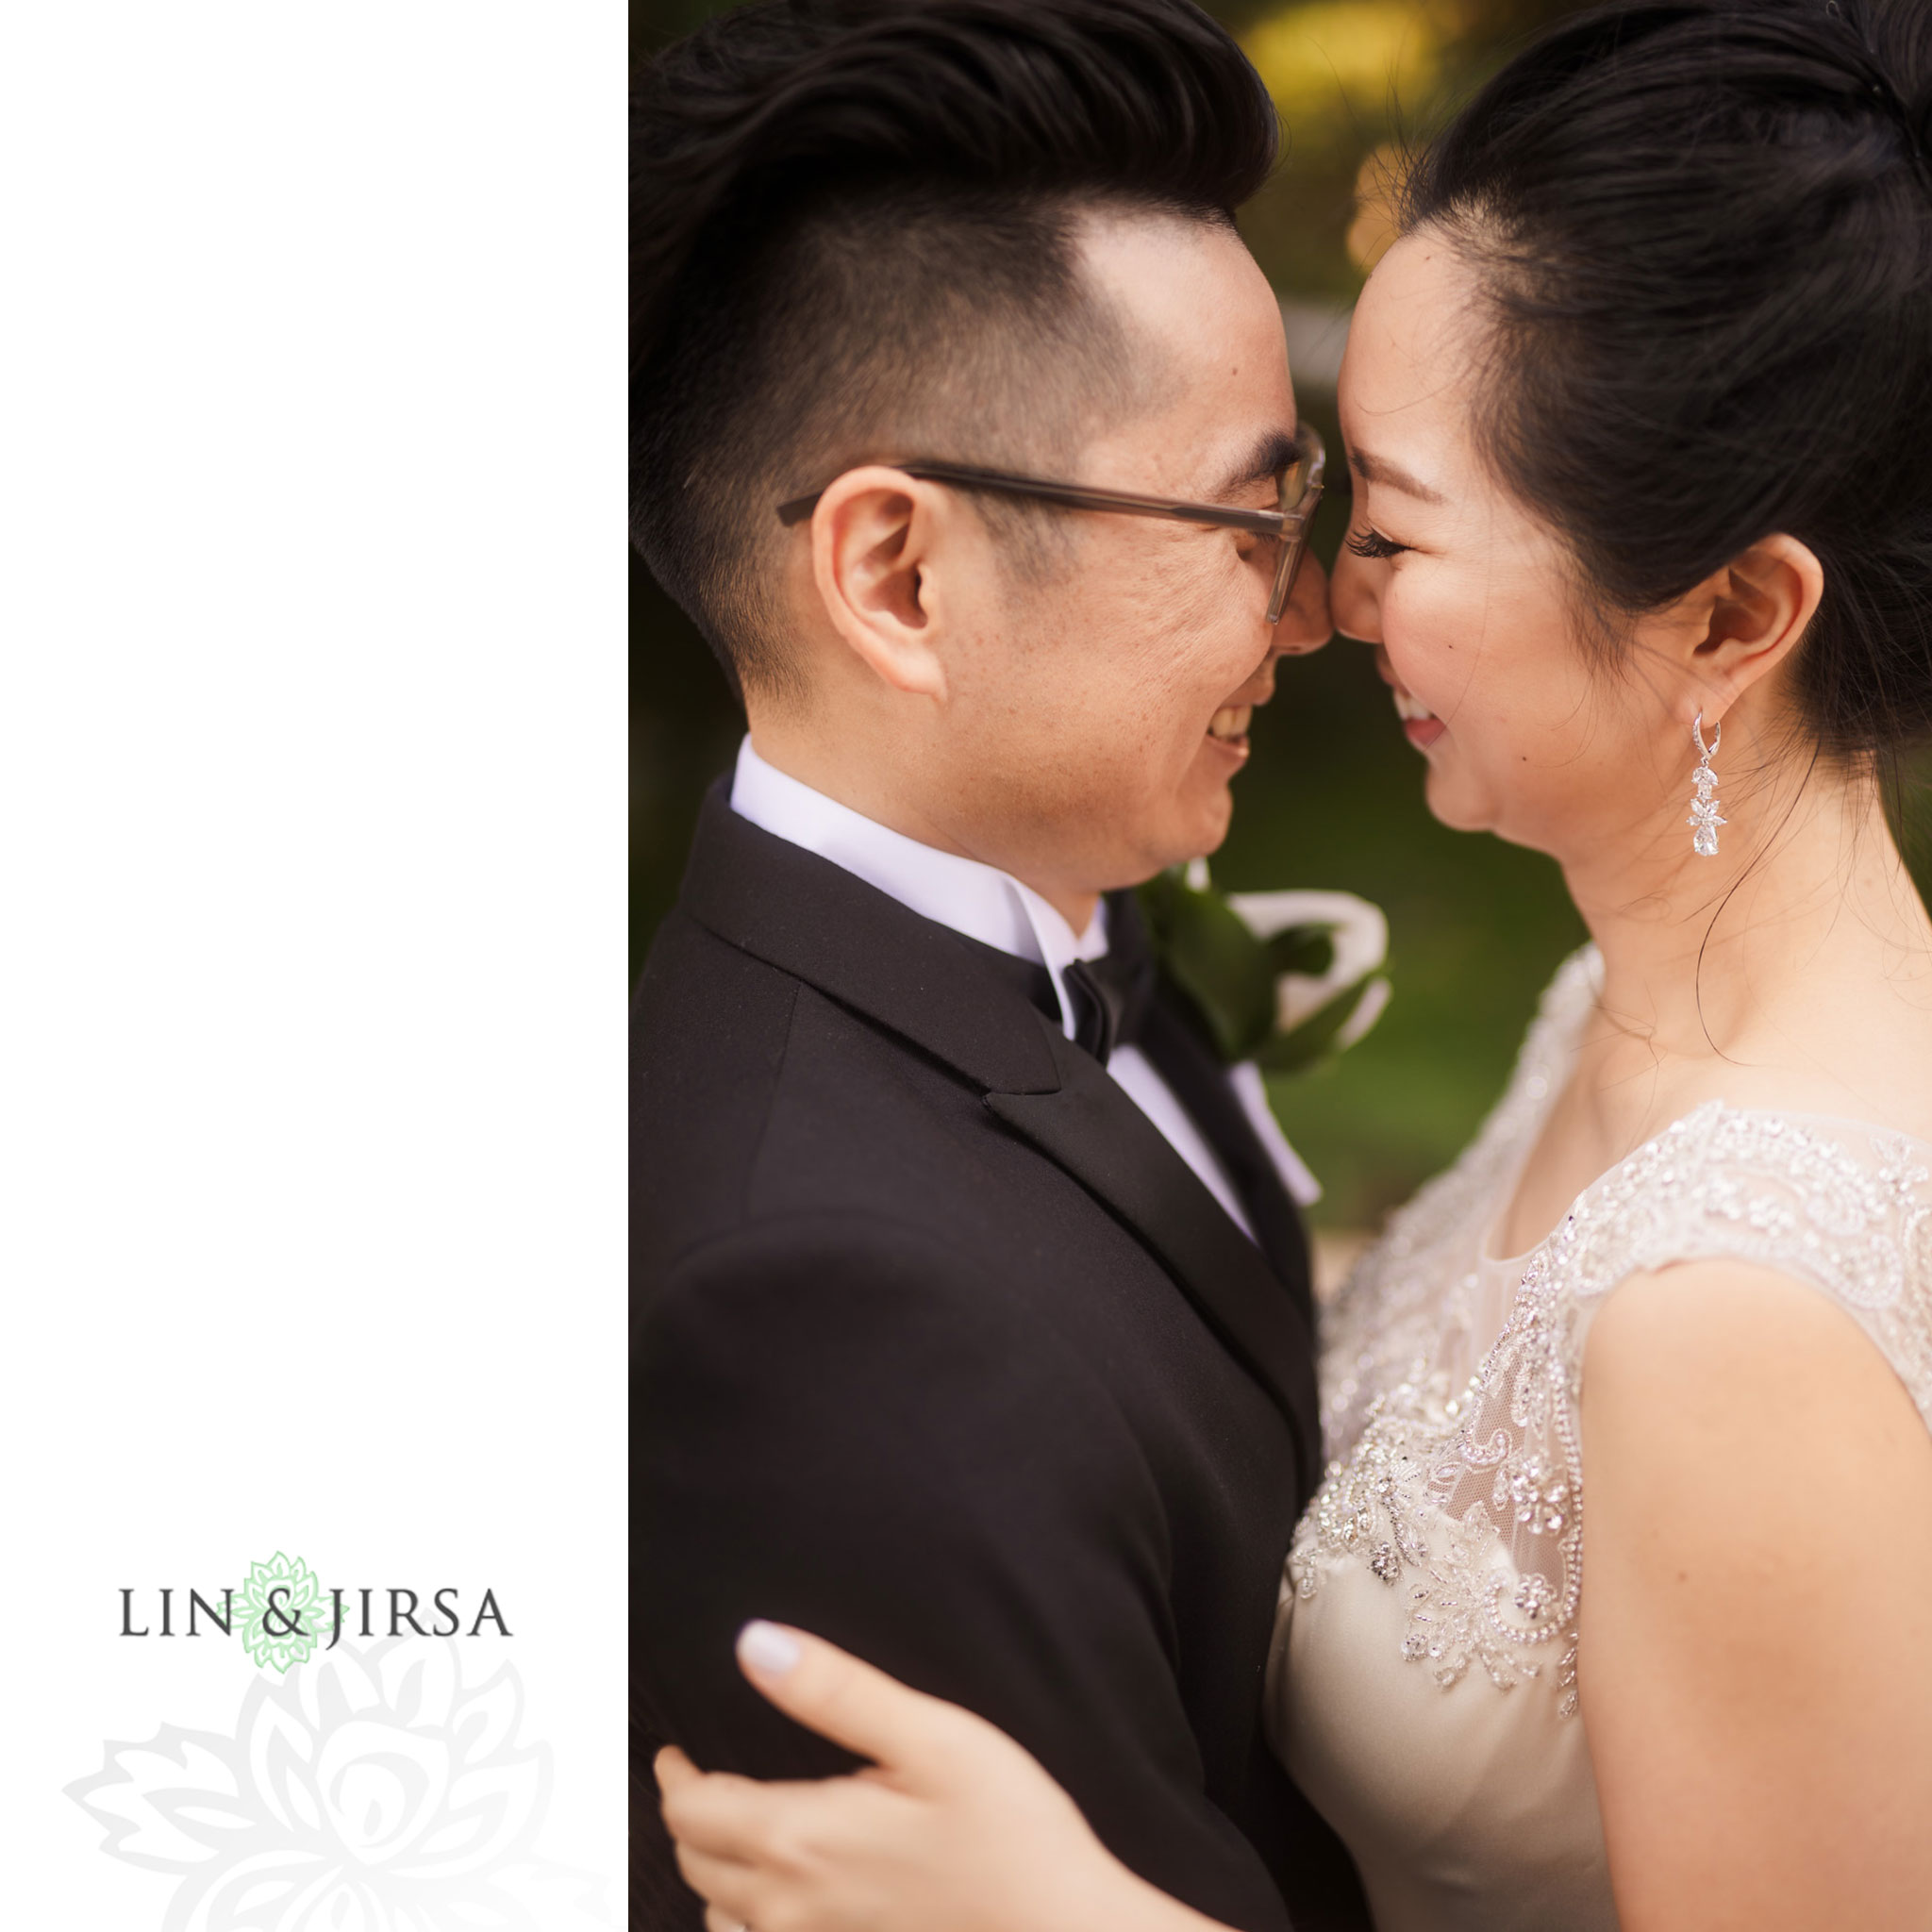 12 segerstrom center for the arts costa mesa wedding photography